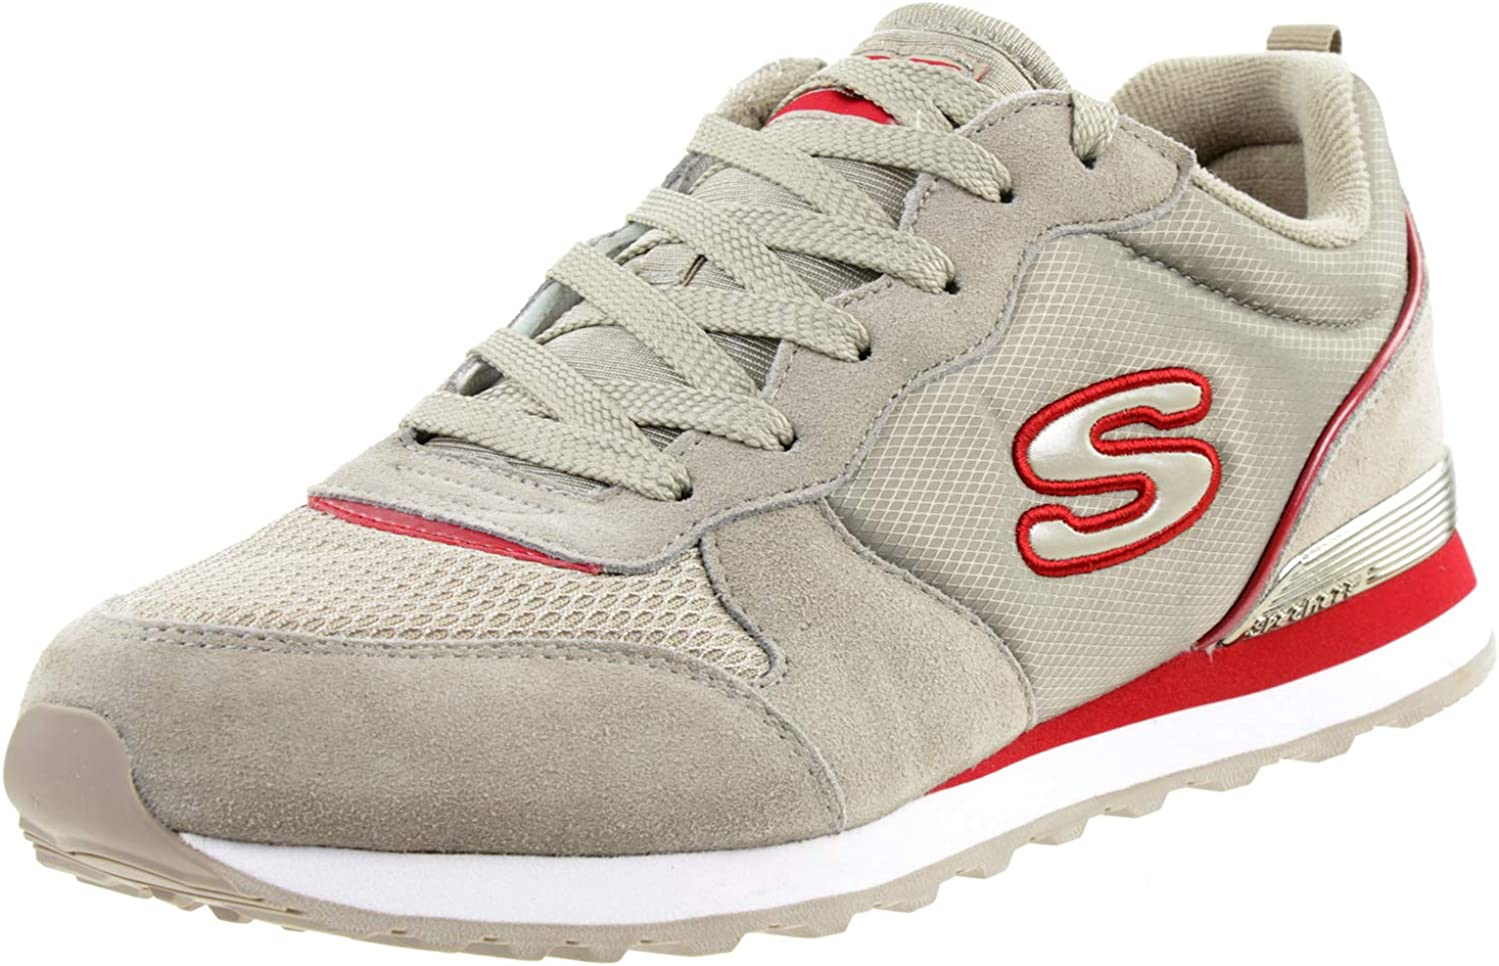 Skechers Women's Attention brand Low-Top Tampa Mall Trainers Sneaker